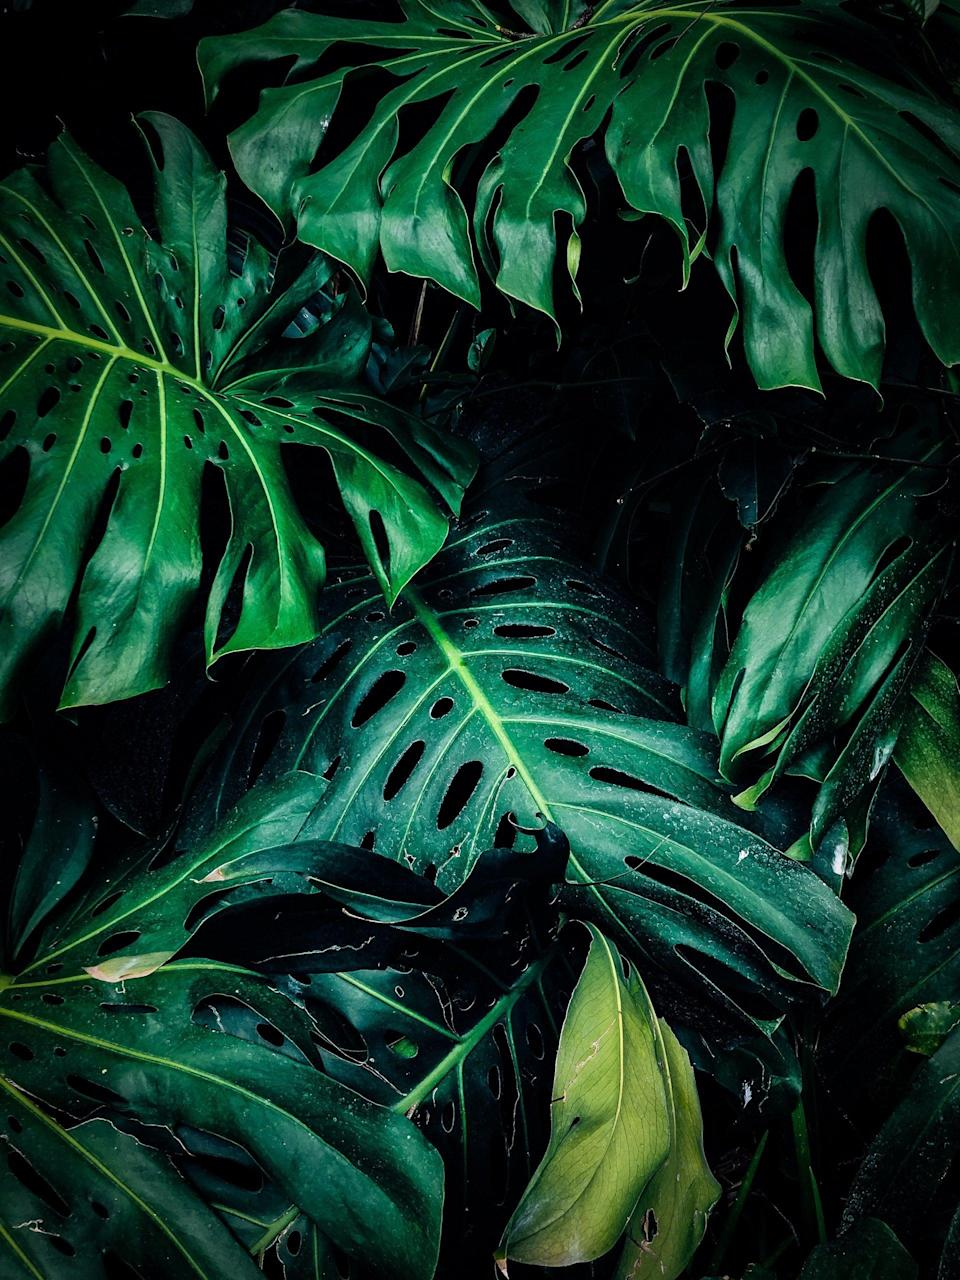 """<p>The Earth always has greenery - it's dependable and consistent, just like a Taurus, which is why it's so fitting that it's this sign's power color. Green is <a href=""""https://www.colorpsychology.org/green/"""" class=""""link rapid-noclick-resp"""" rel=""""nofollow noopener"""" target=""""_blank"""" data-ylk=""""slk:known for growth"""">known for growth</a>, relaxation, connection, tranquility, innocence, and dependability. Wear green when you want to feel grounded.</p>"""